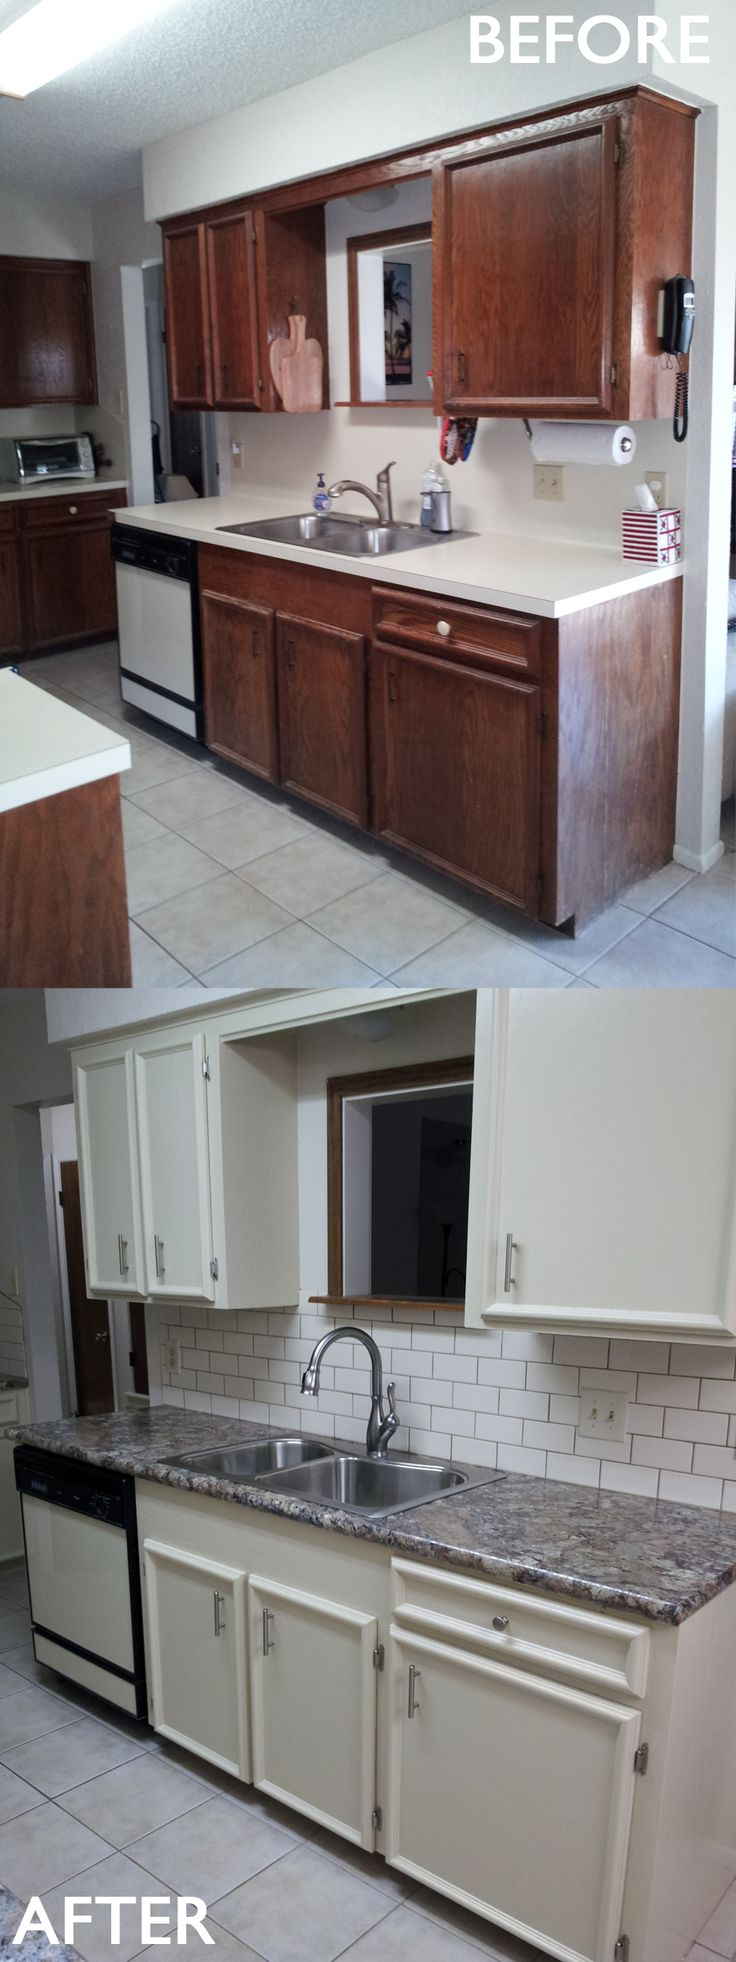 17 best images about before and after remodeling on for Kitchen remodel before after